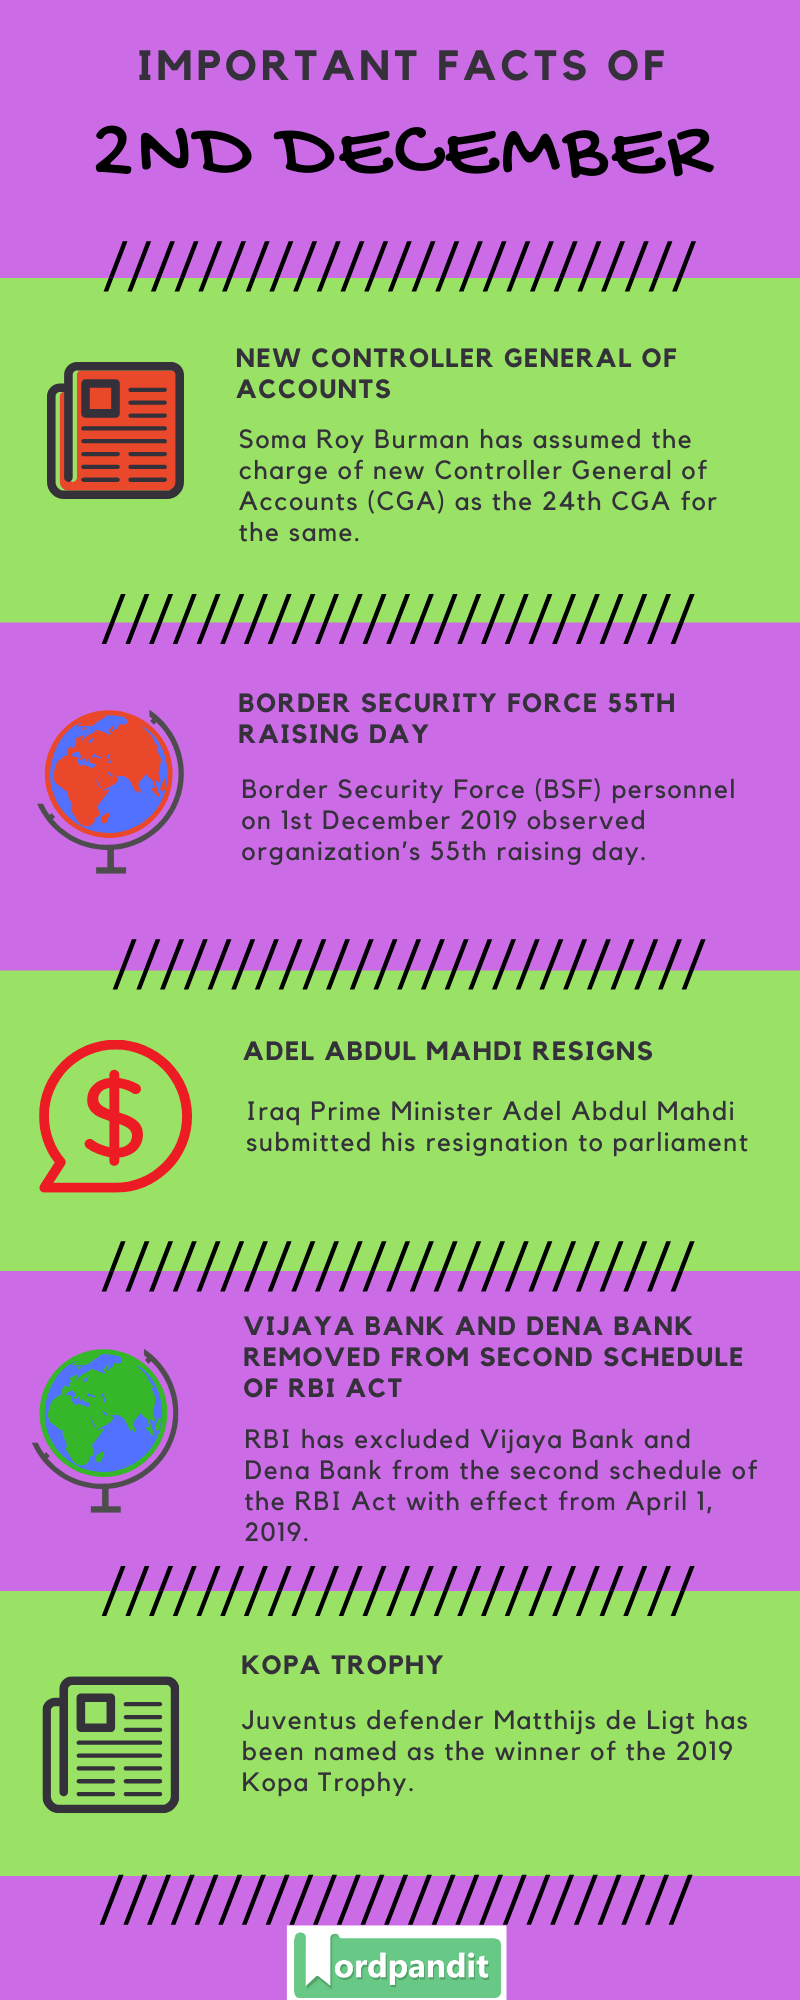 Daily Current Affairs 2 December 2019 Current Affairs Quiz 2 December 2019 Current Affairs Infographic